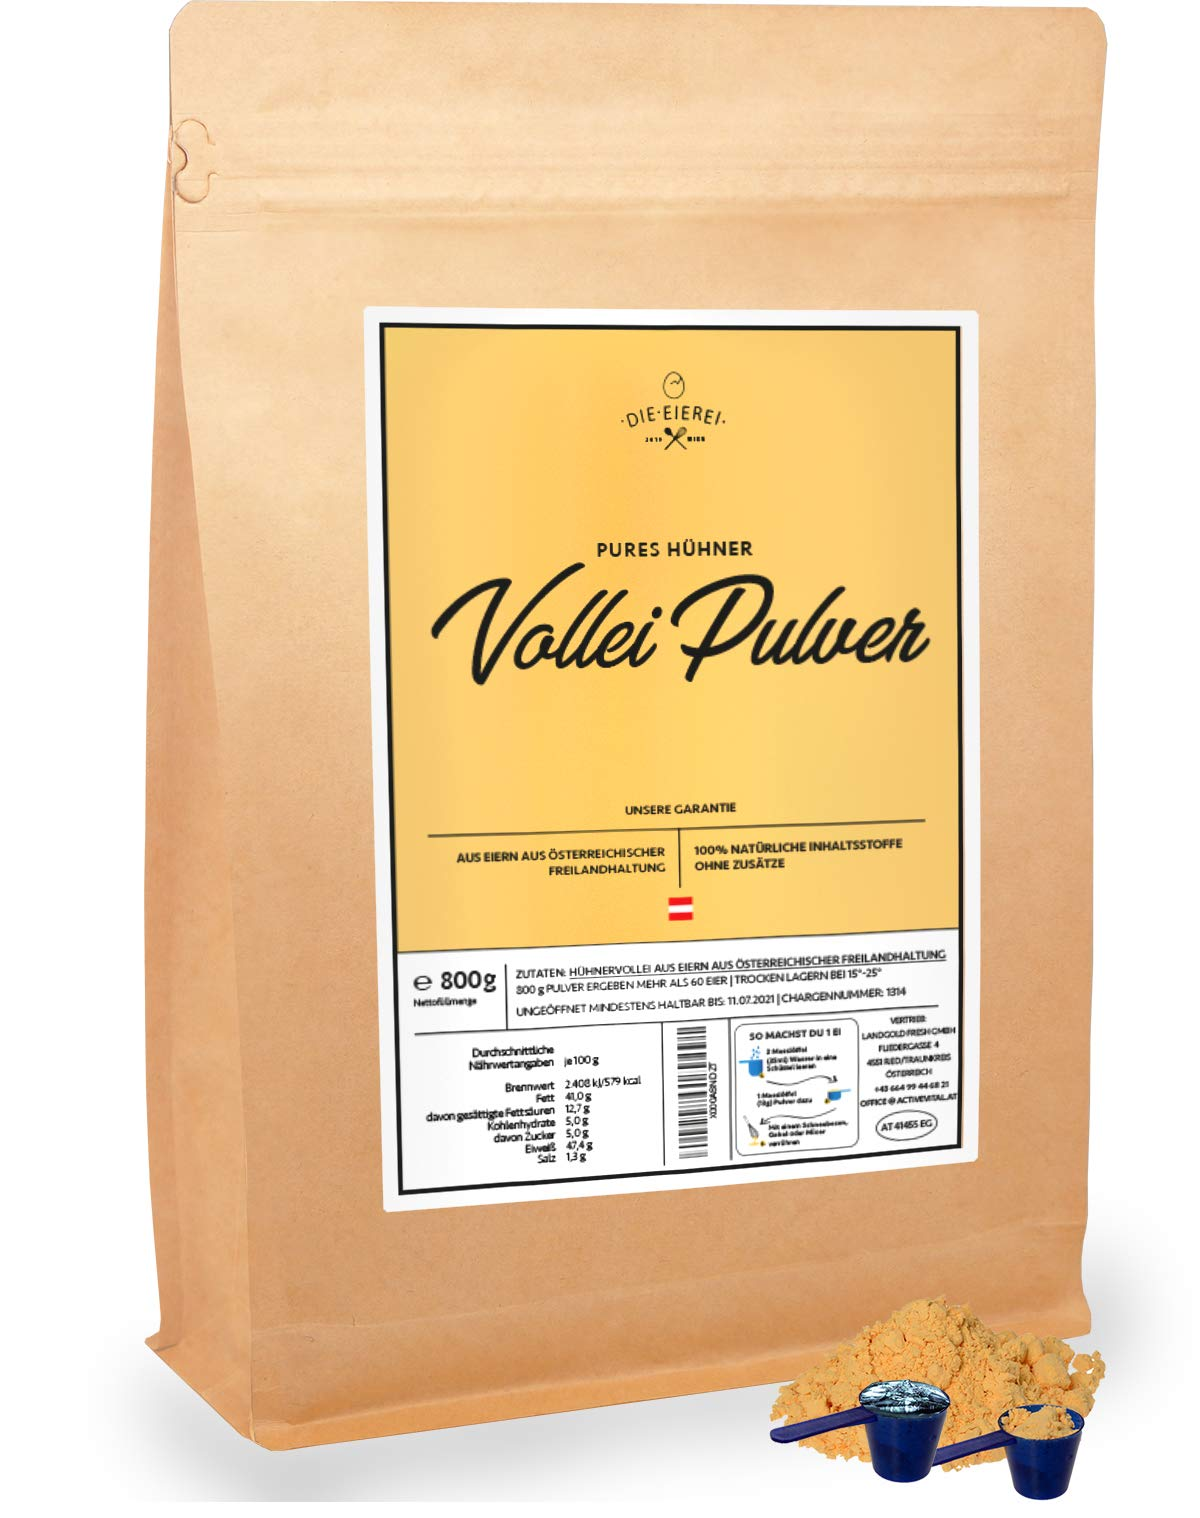 Egg-Powder 100% from Austria – 800g Free Range - Ideal for Storage exp March 2022 - Powdered Eggs for Baking and Cooking